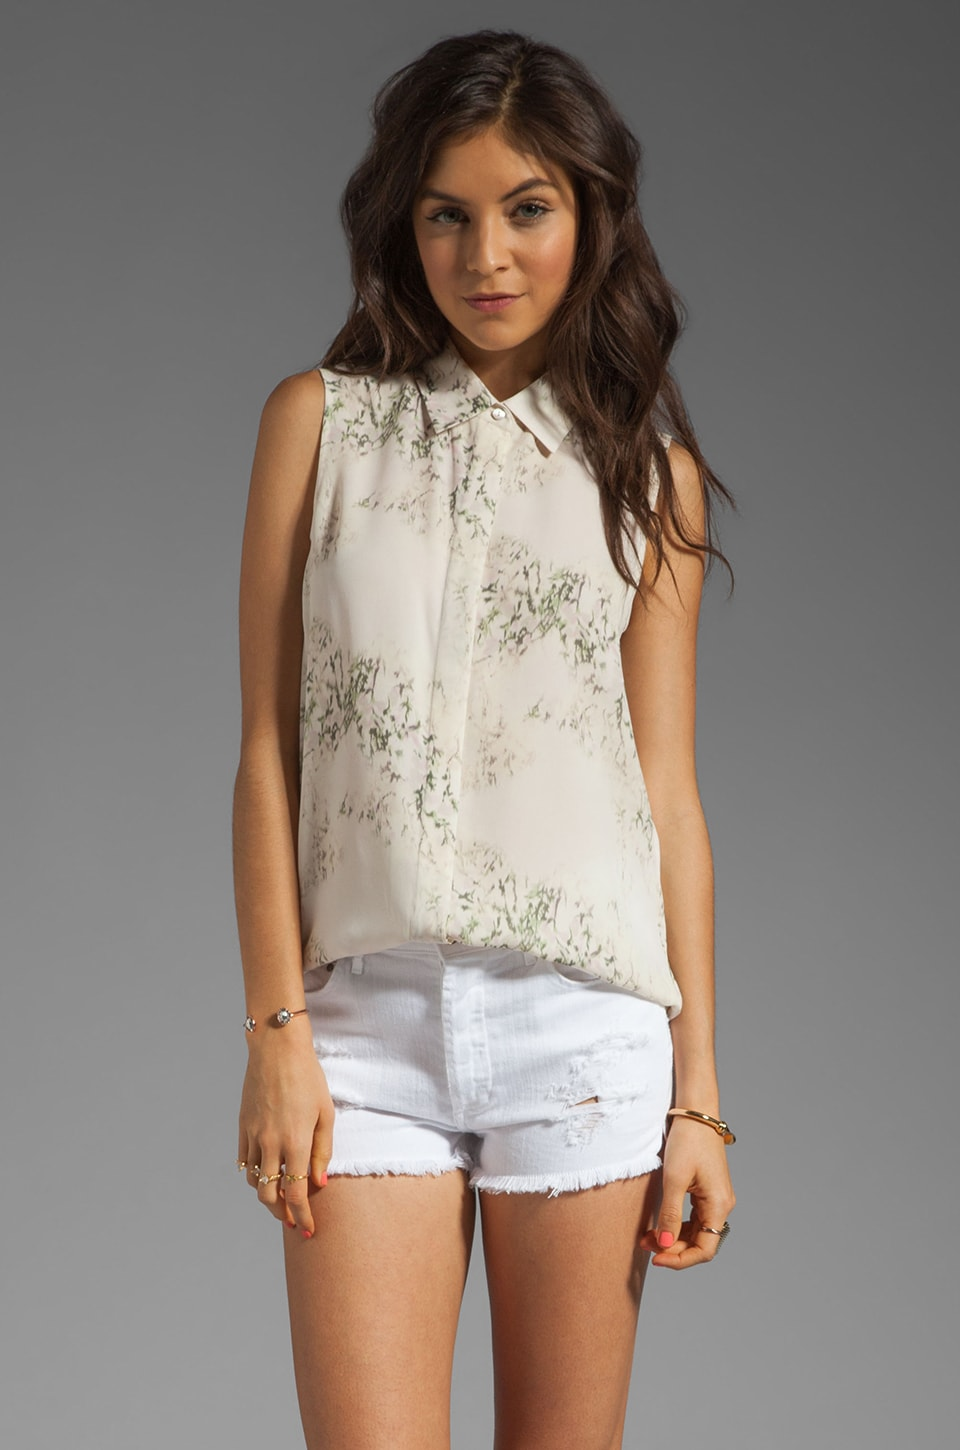 Theory Cherry Blossom Print Earhart Top in Ivory